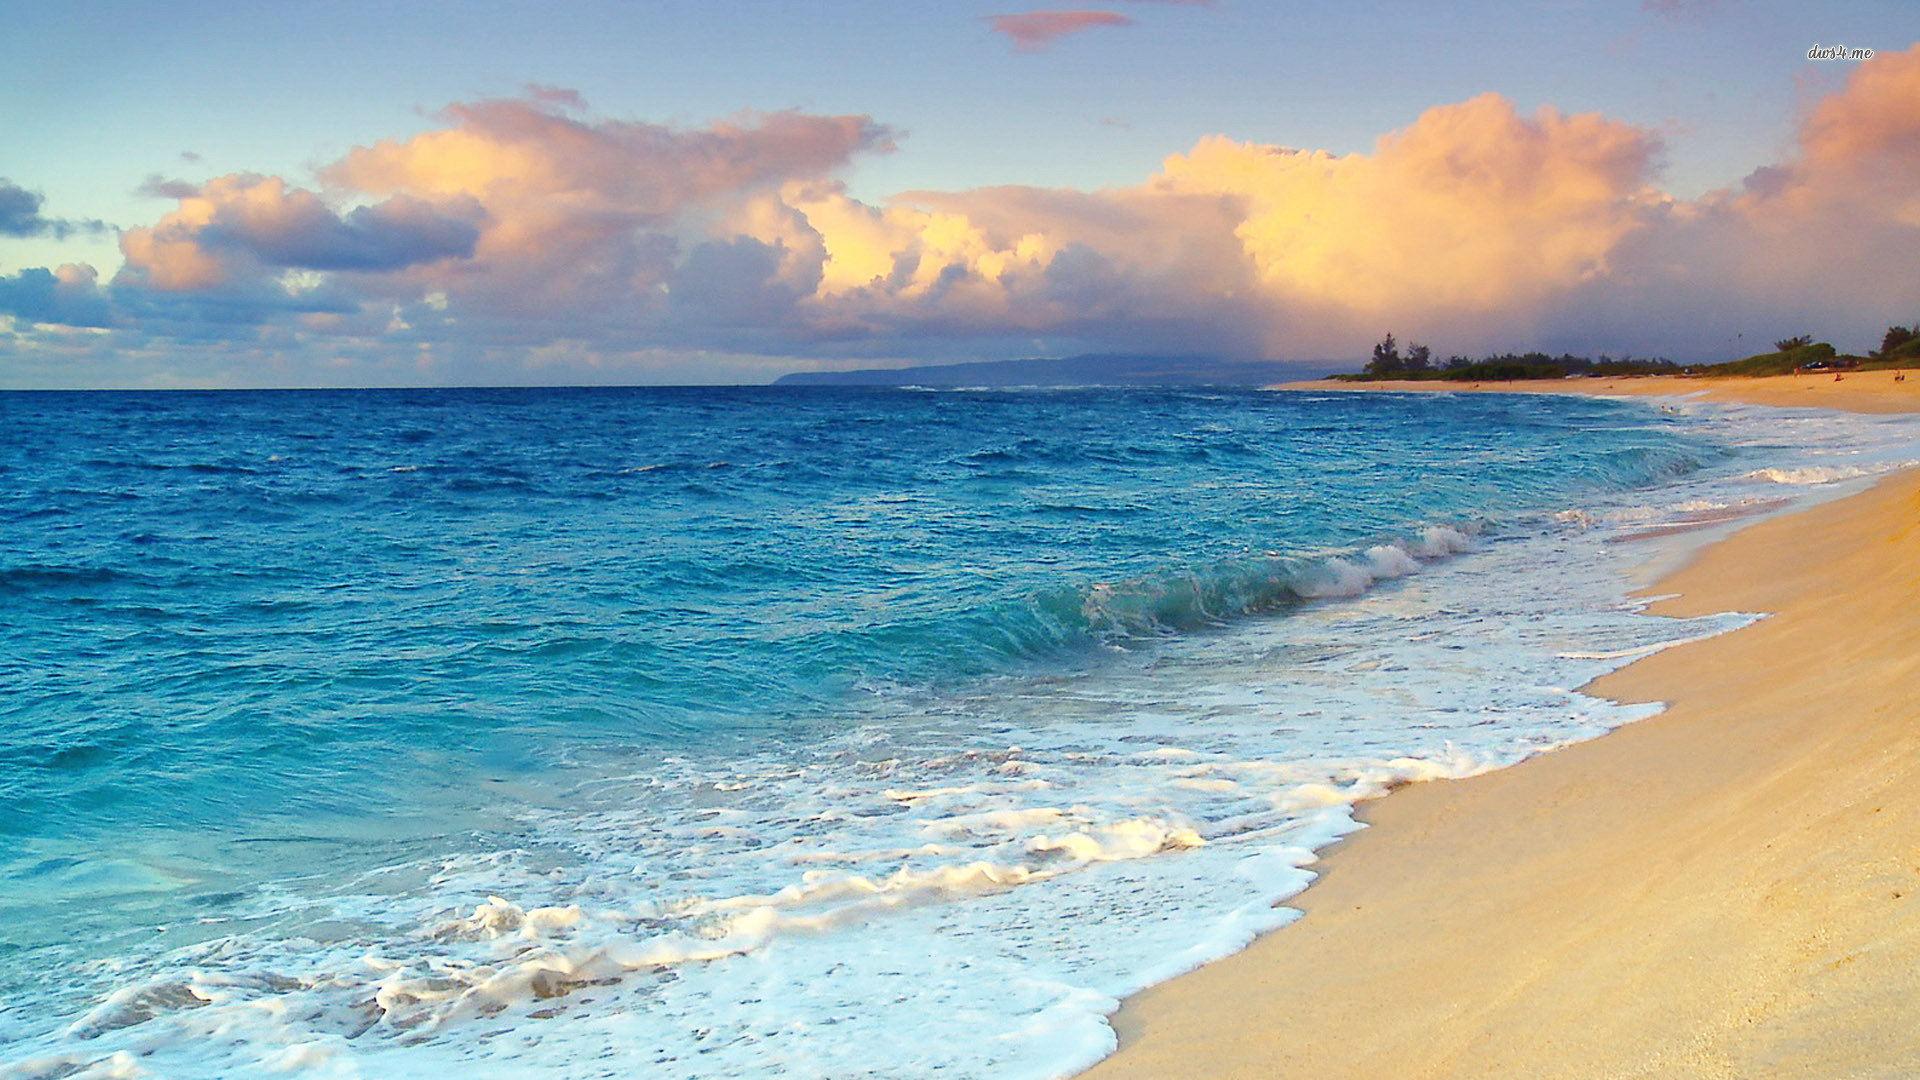 Hawaii Beach wallpaper 1280x800 Hawaii Beach wallpaper 1366x768 Hawaii 1920x1080